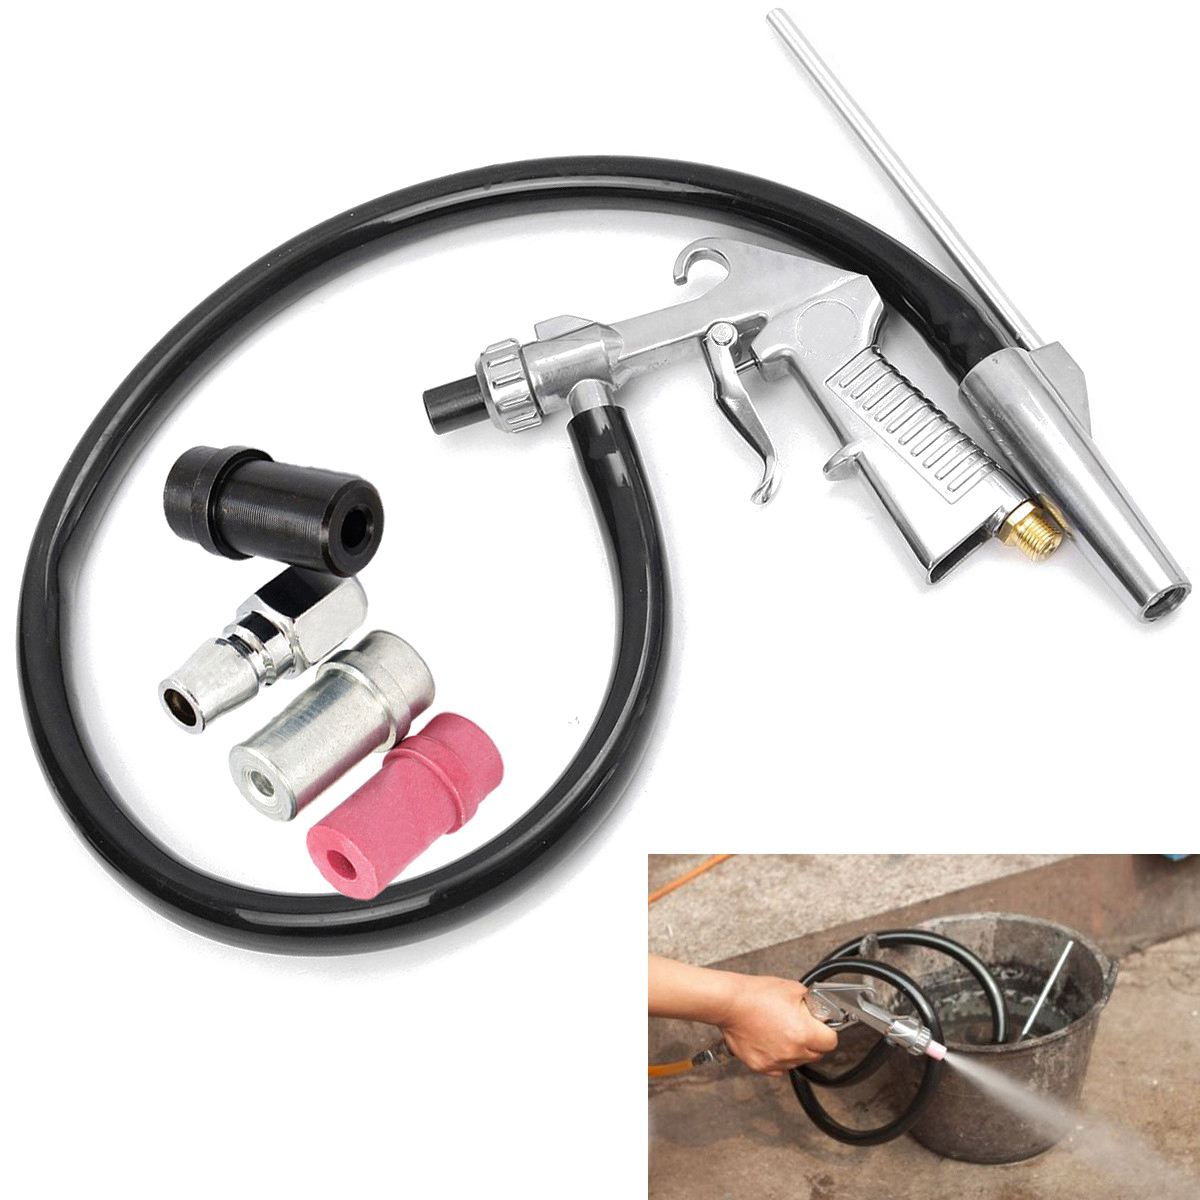 High Quality Air Sand Blasting Gun Kit  Sandblaster Kit Sandblasting Blast Gun+3 Nozzles+Connector+Tube Derusting Tool Kit